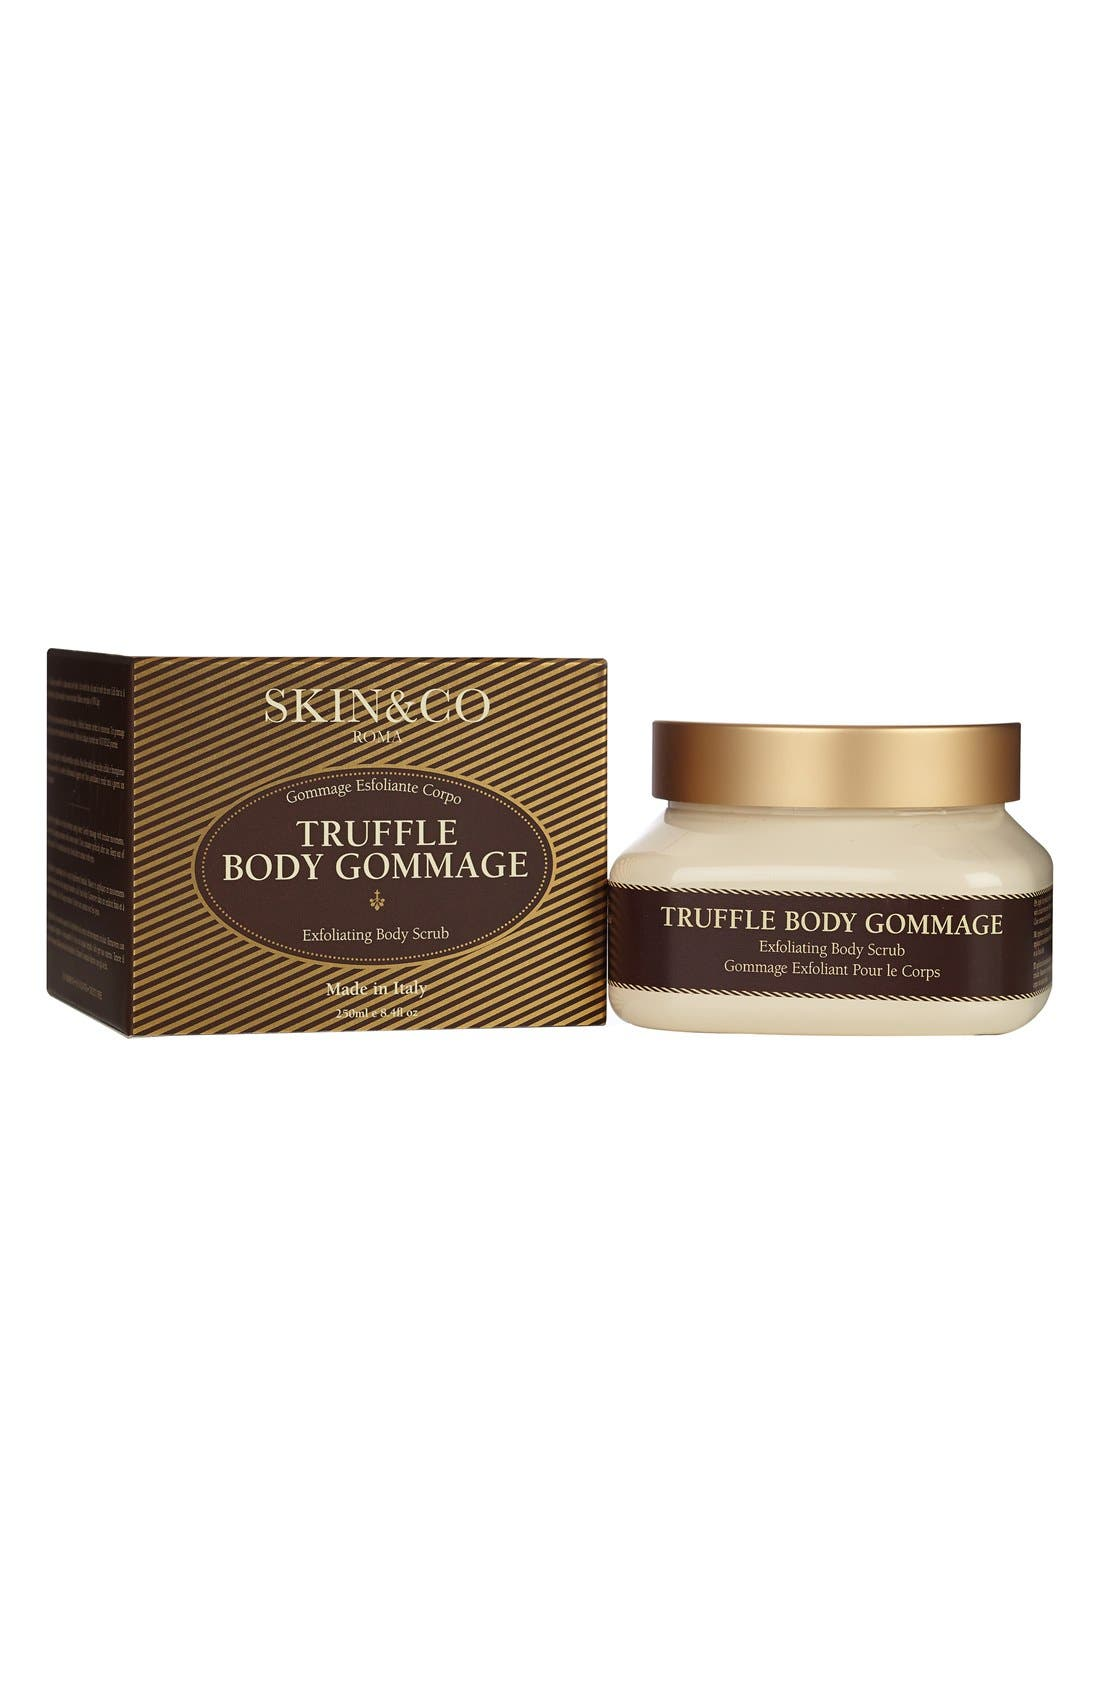 SKIN&CO Truffle Body Gommage,                             Alternate thumbnail 2, color,                             000